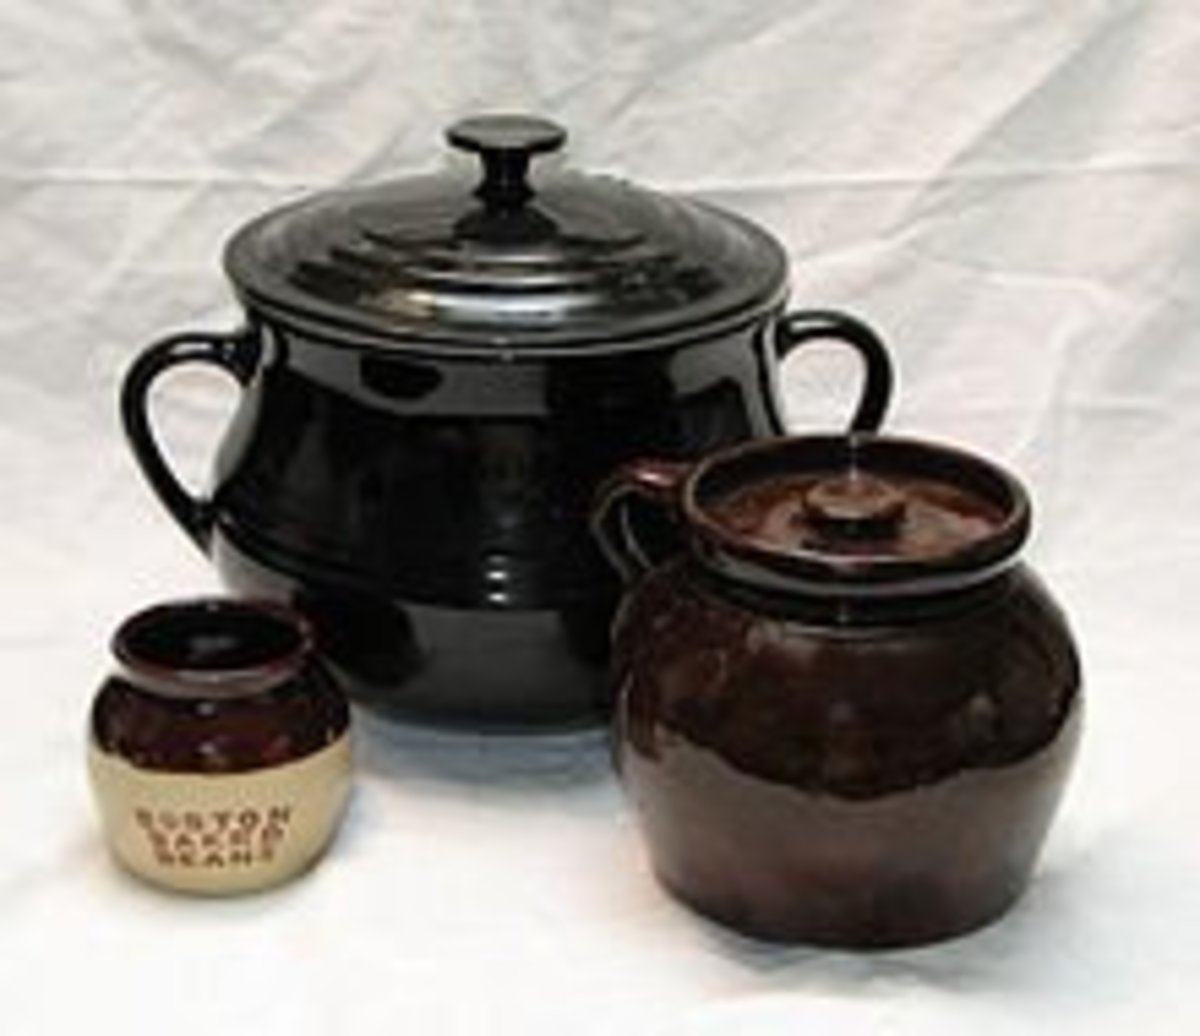 Baked beans are commonly prepared in a bean pot.